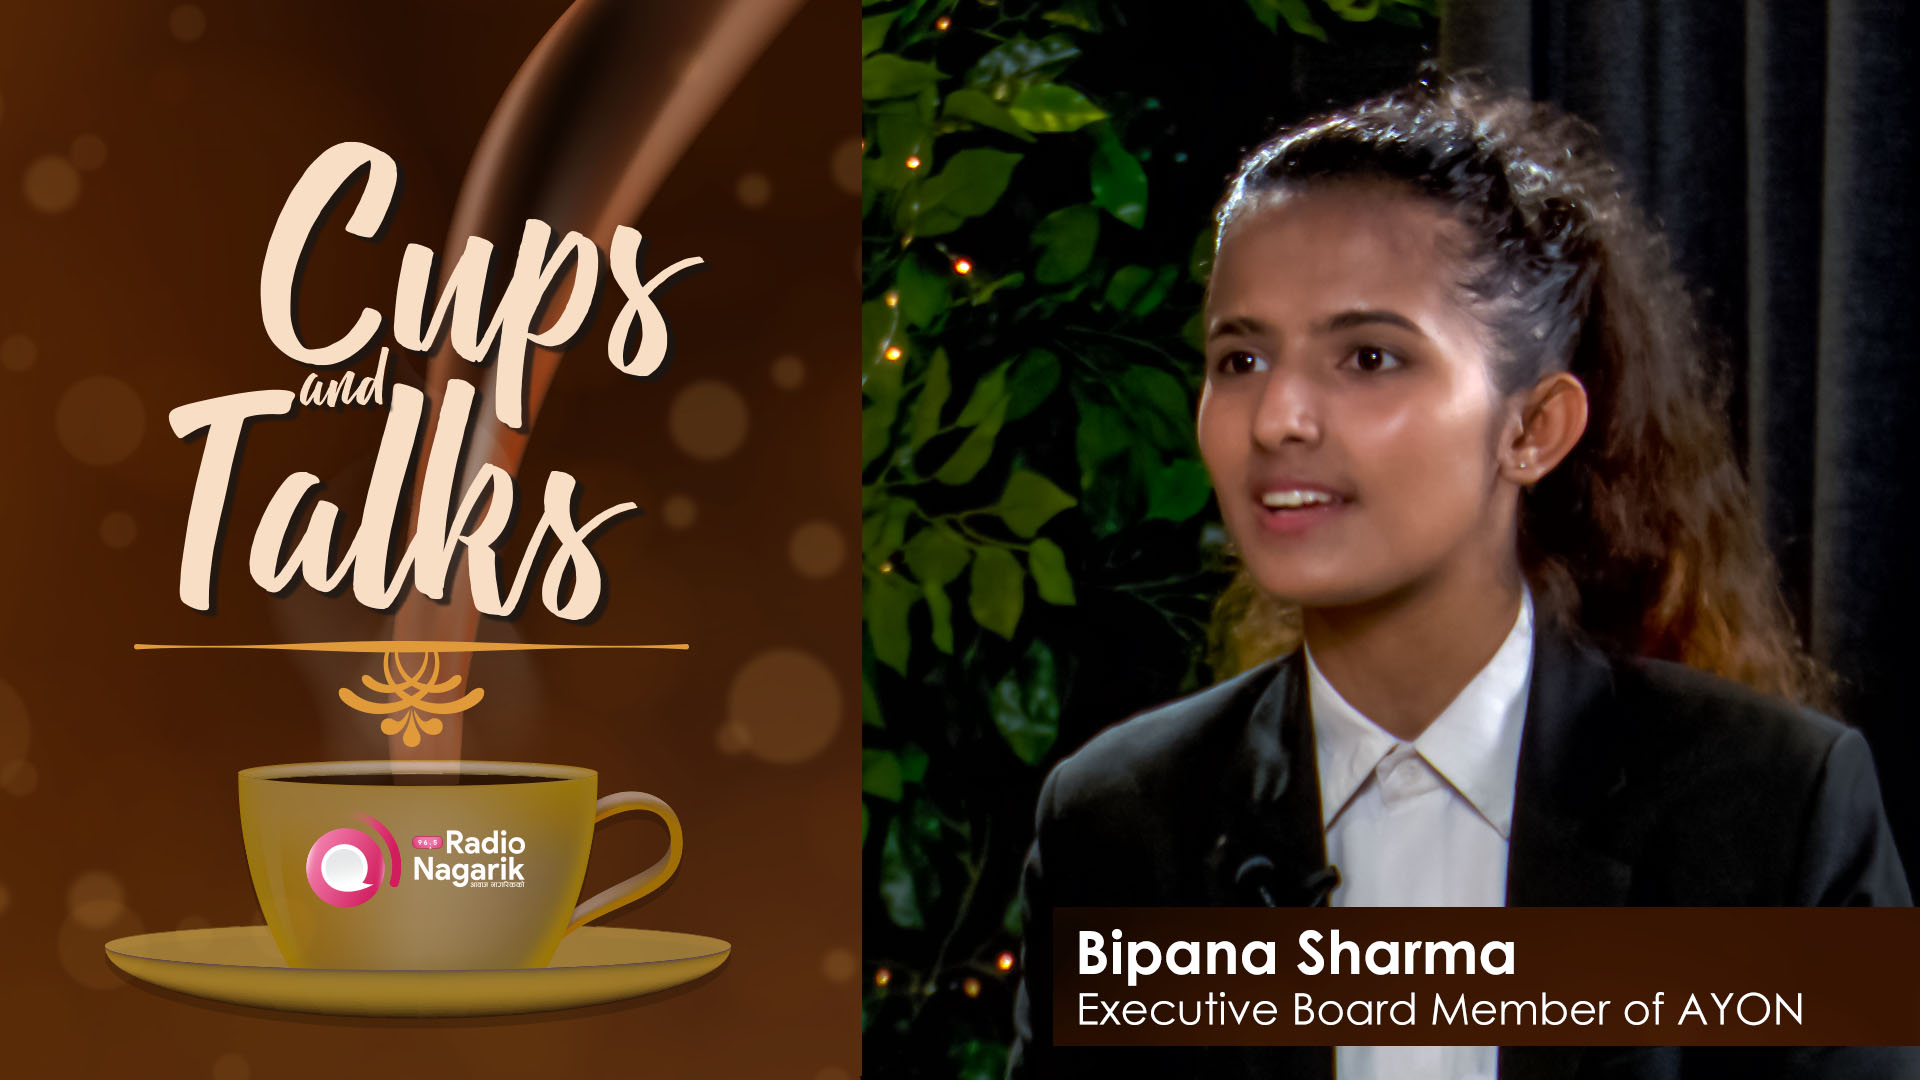 Bipana Sharma - Confidence is the Key | Cups N Talks - Sushmina Baidya